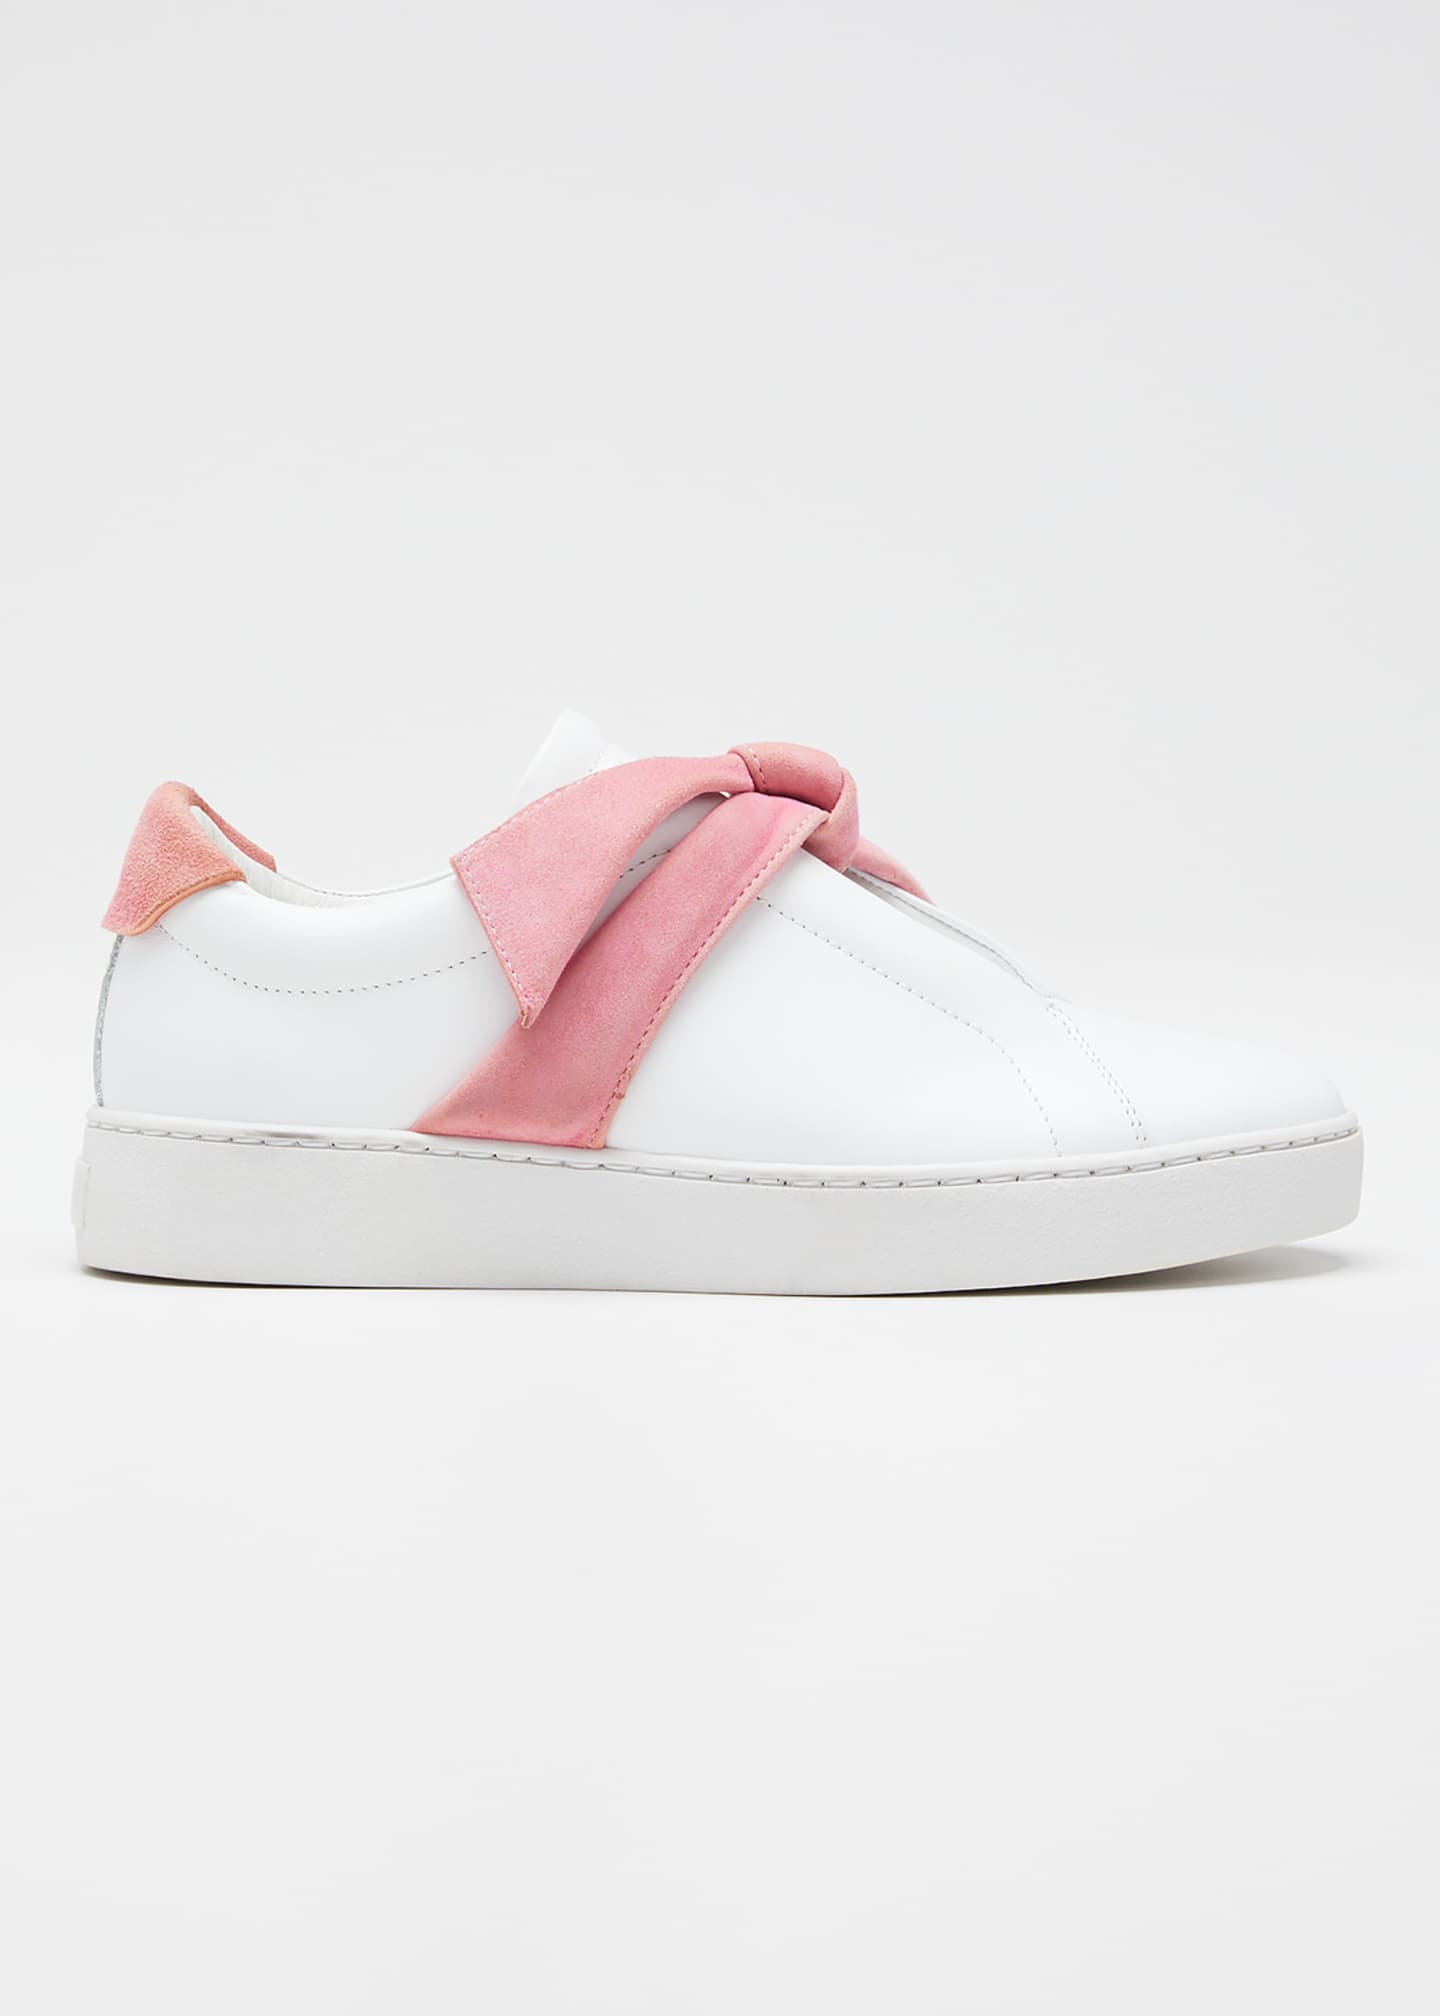 Alexandre Birman Clarita Two-Tone Knotted Bow Sneakers